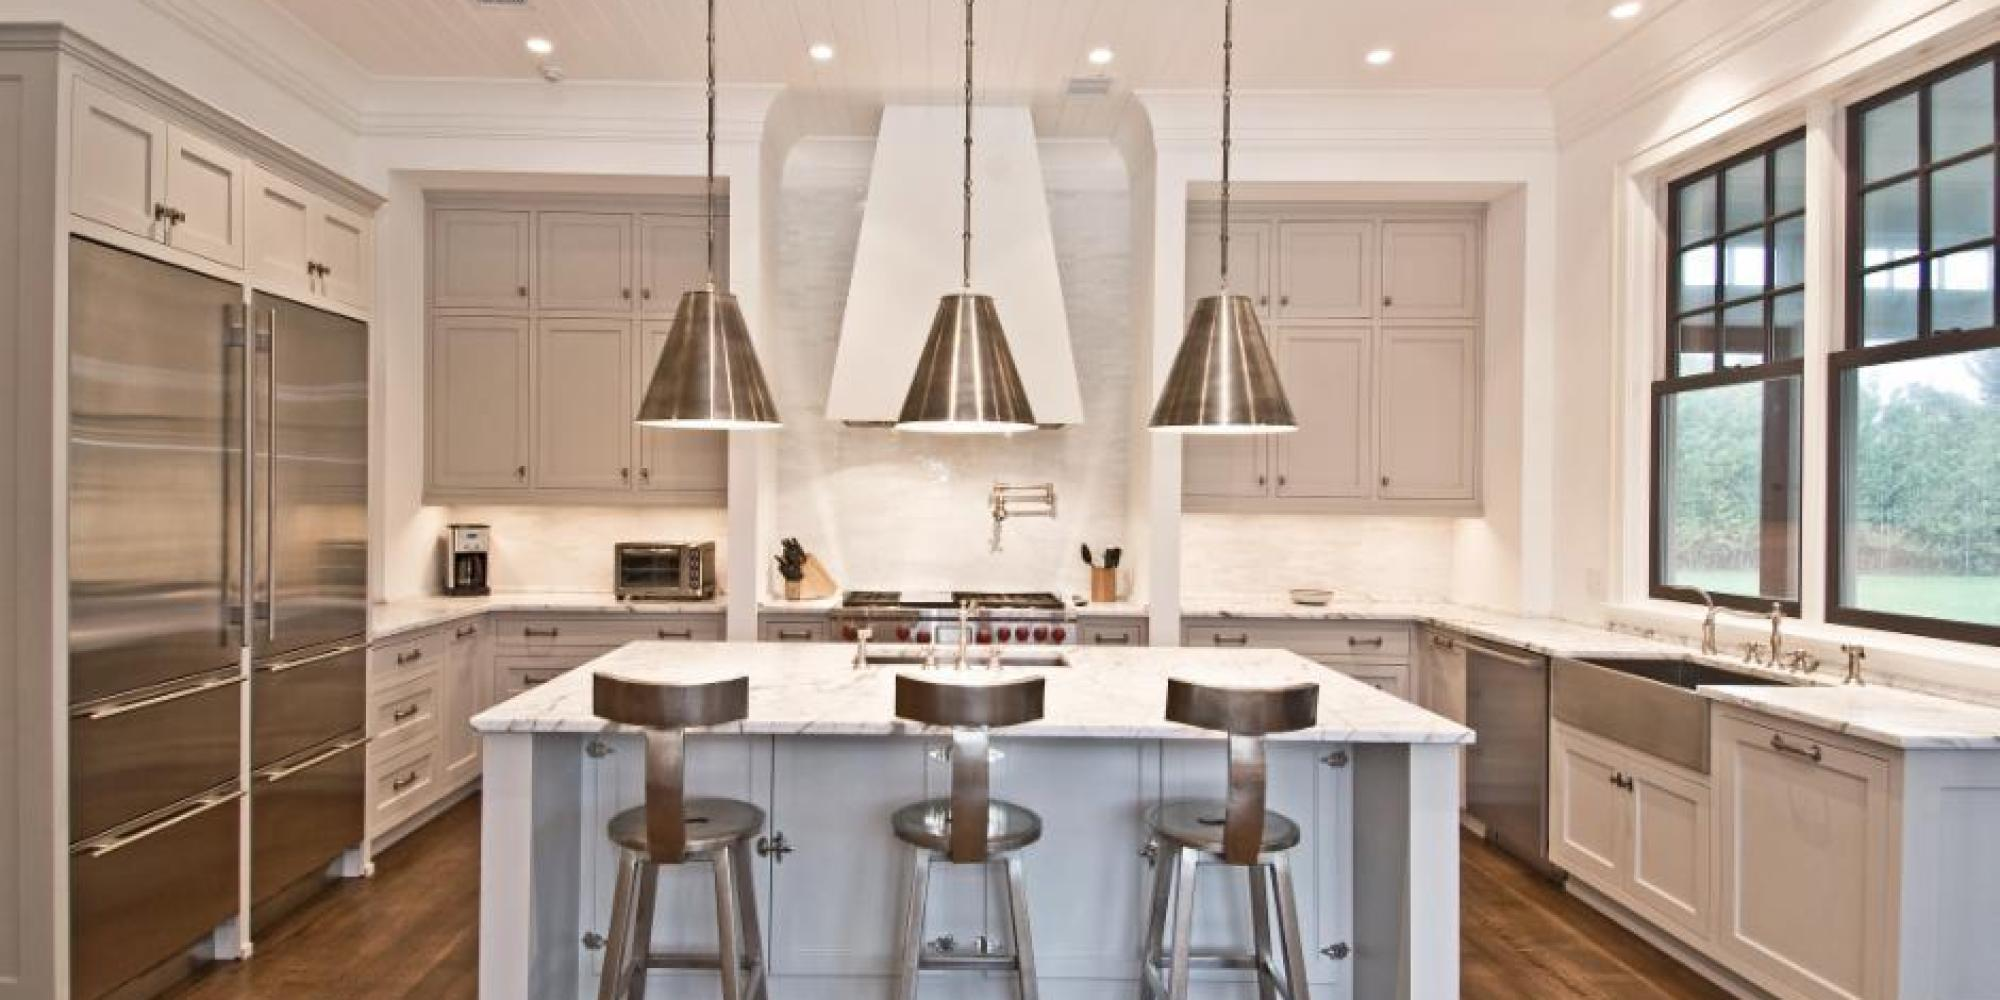 The Best Paint Colors For Every Type Of Kitchen HuffPost - Best color for kitchen walls with wood cabinets